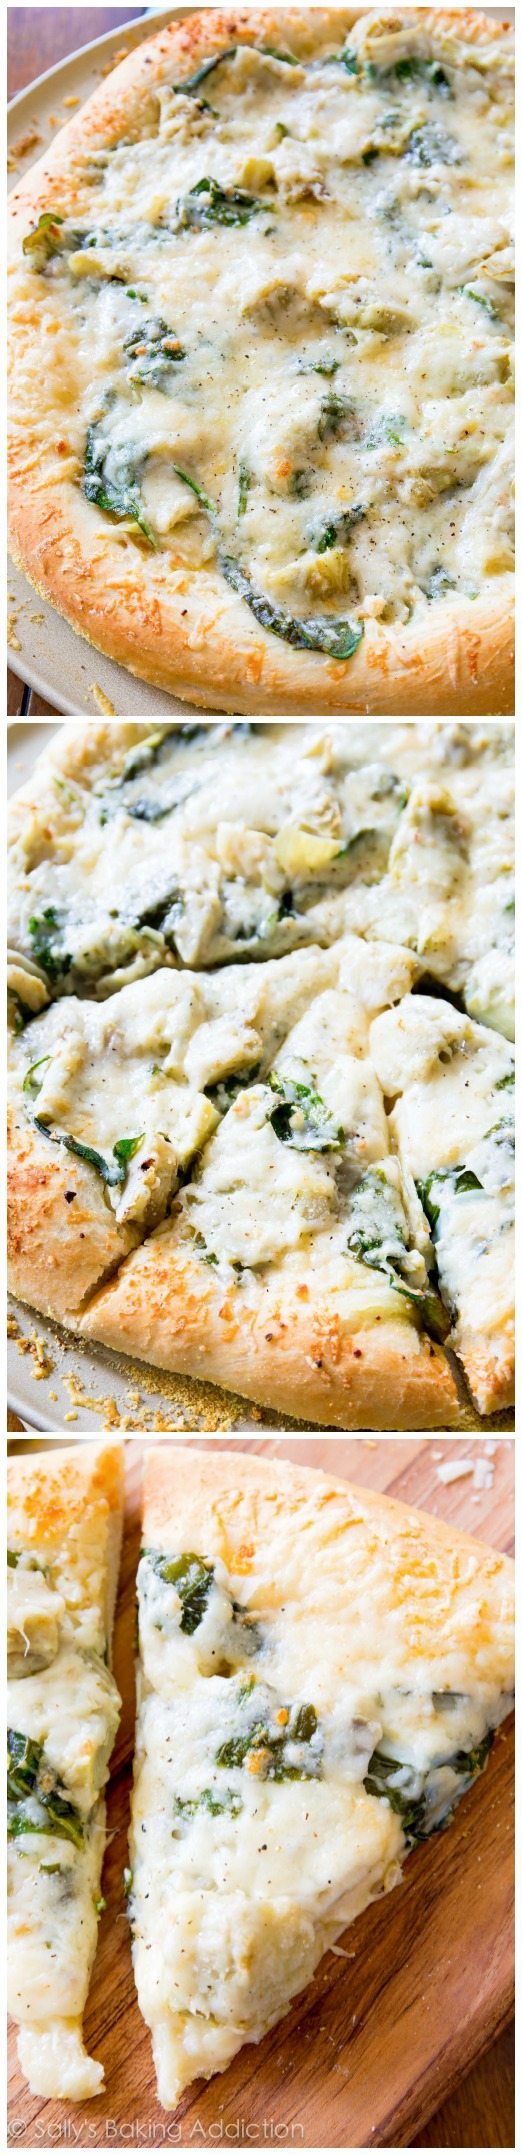 Spinach Artichoke White Cheese Pizza - this white pizza will remind you of creamy, comforting spinach artichoke dip!